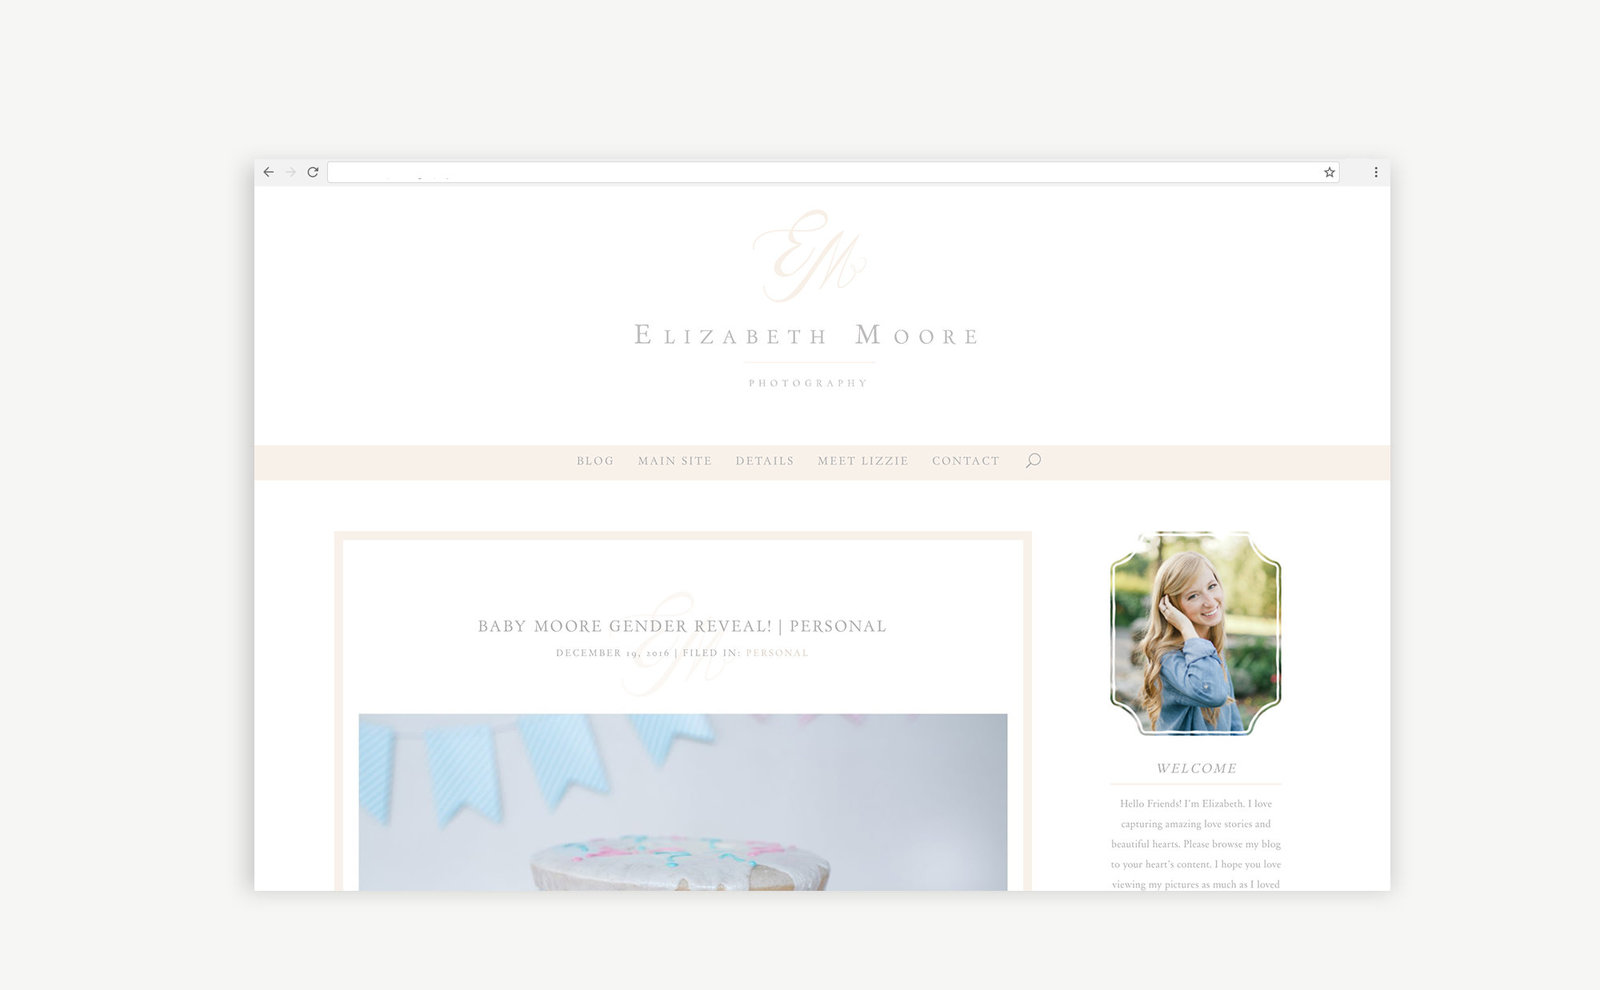 branding-for-creatives-web-design-emoore-05